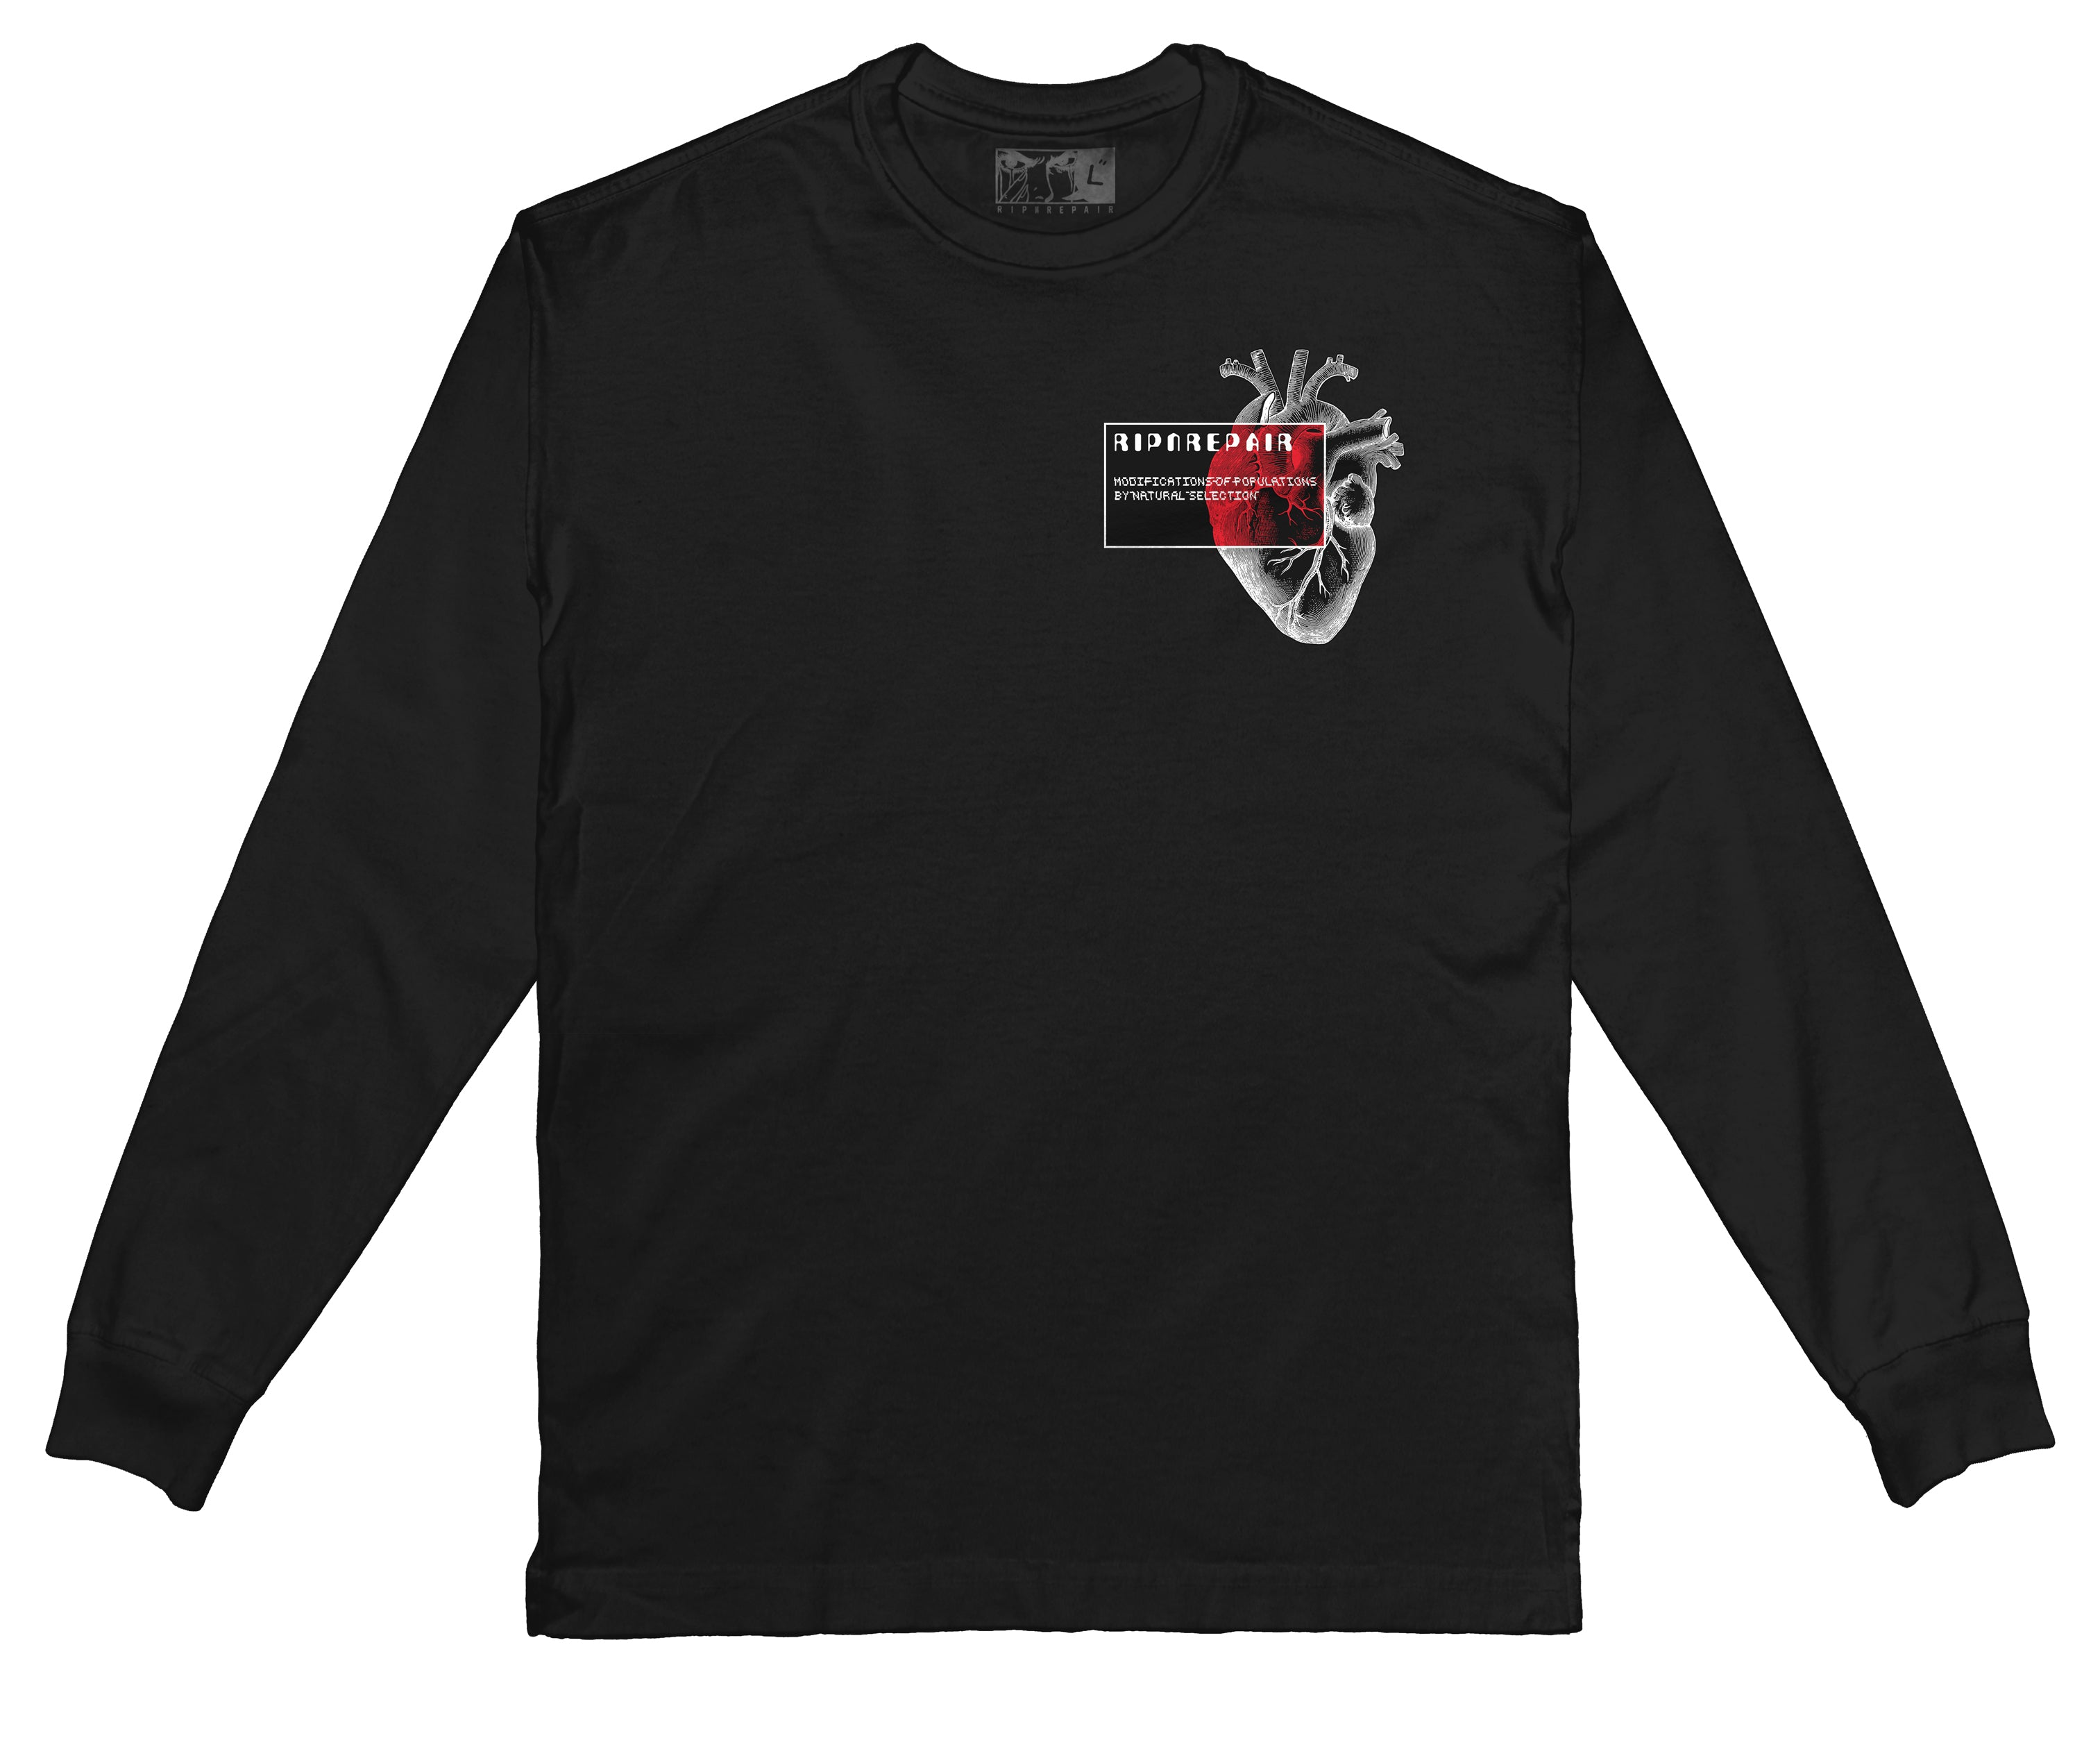 EXO - Long Sleeve (Black) - RIPNRPR